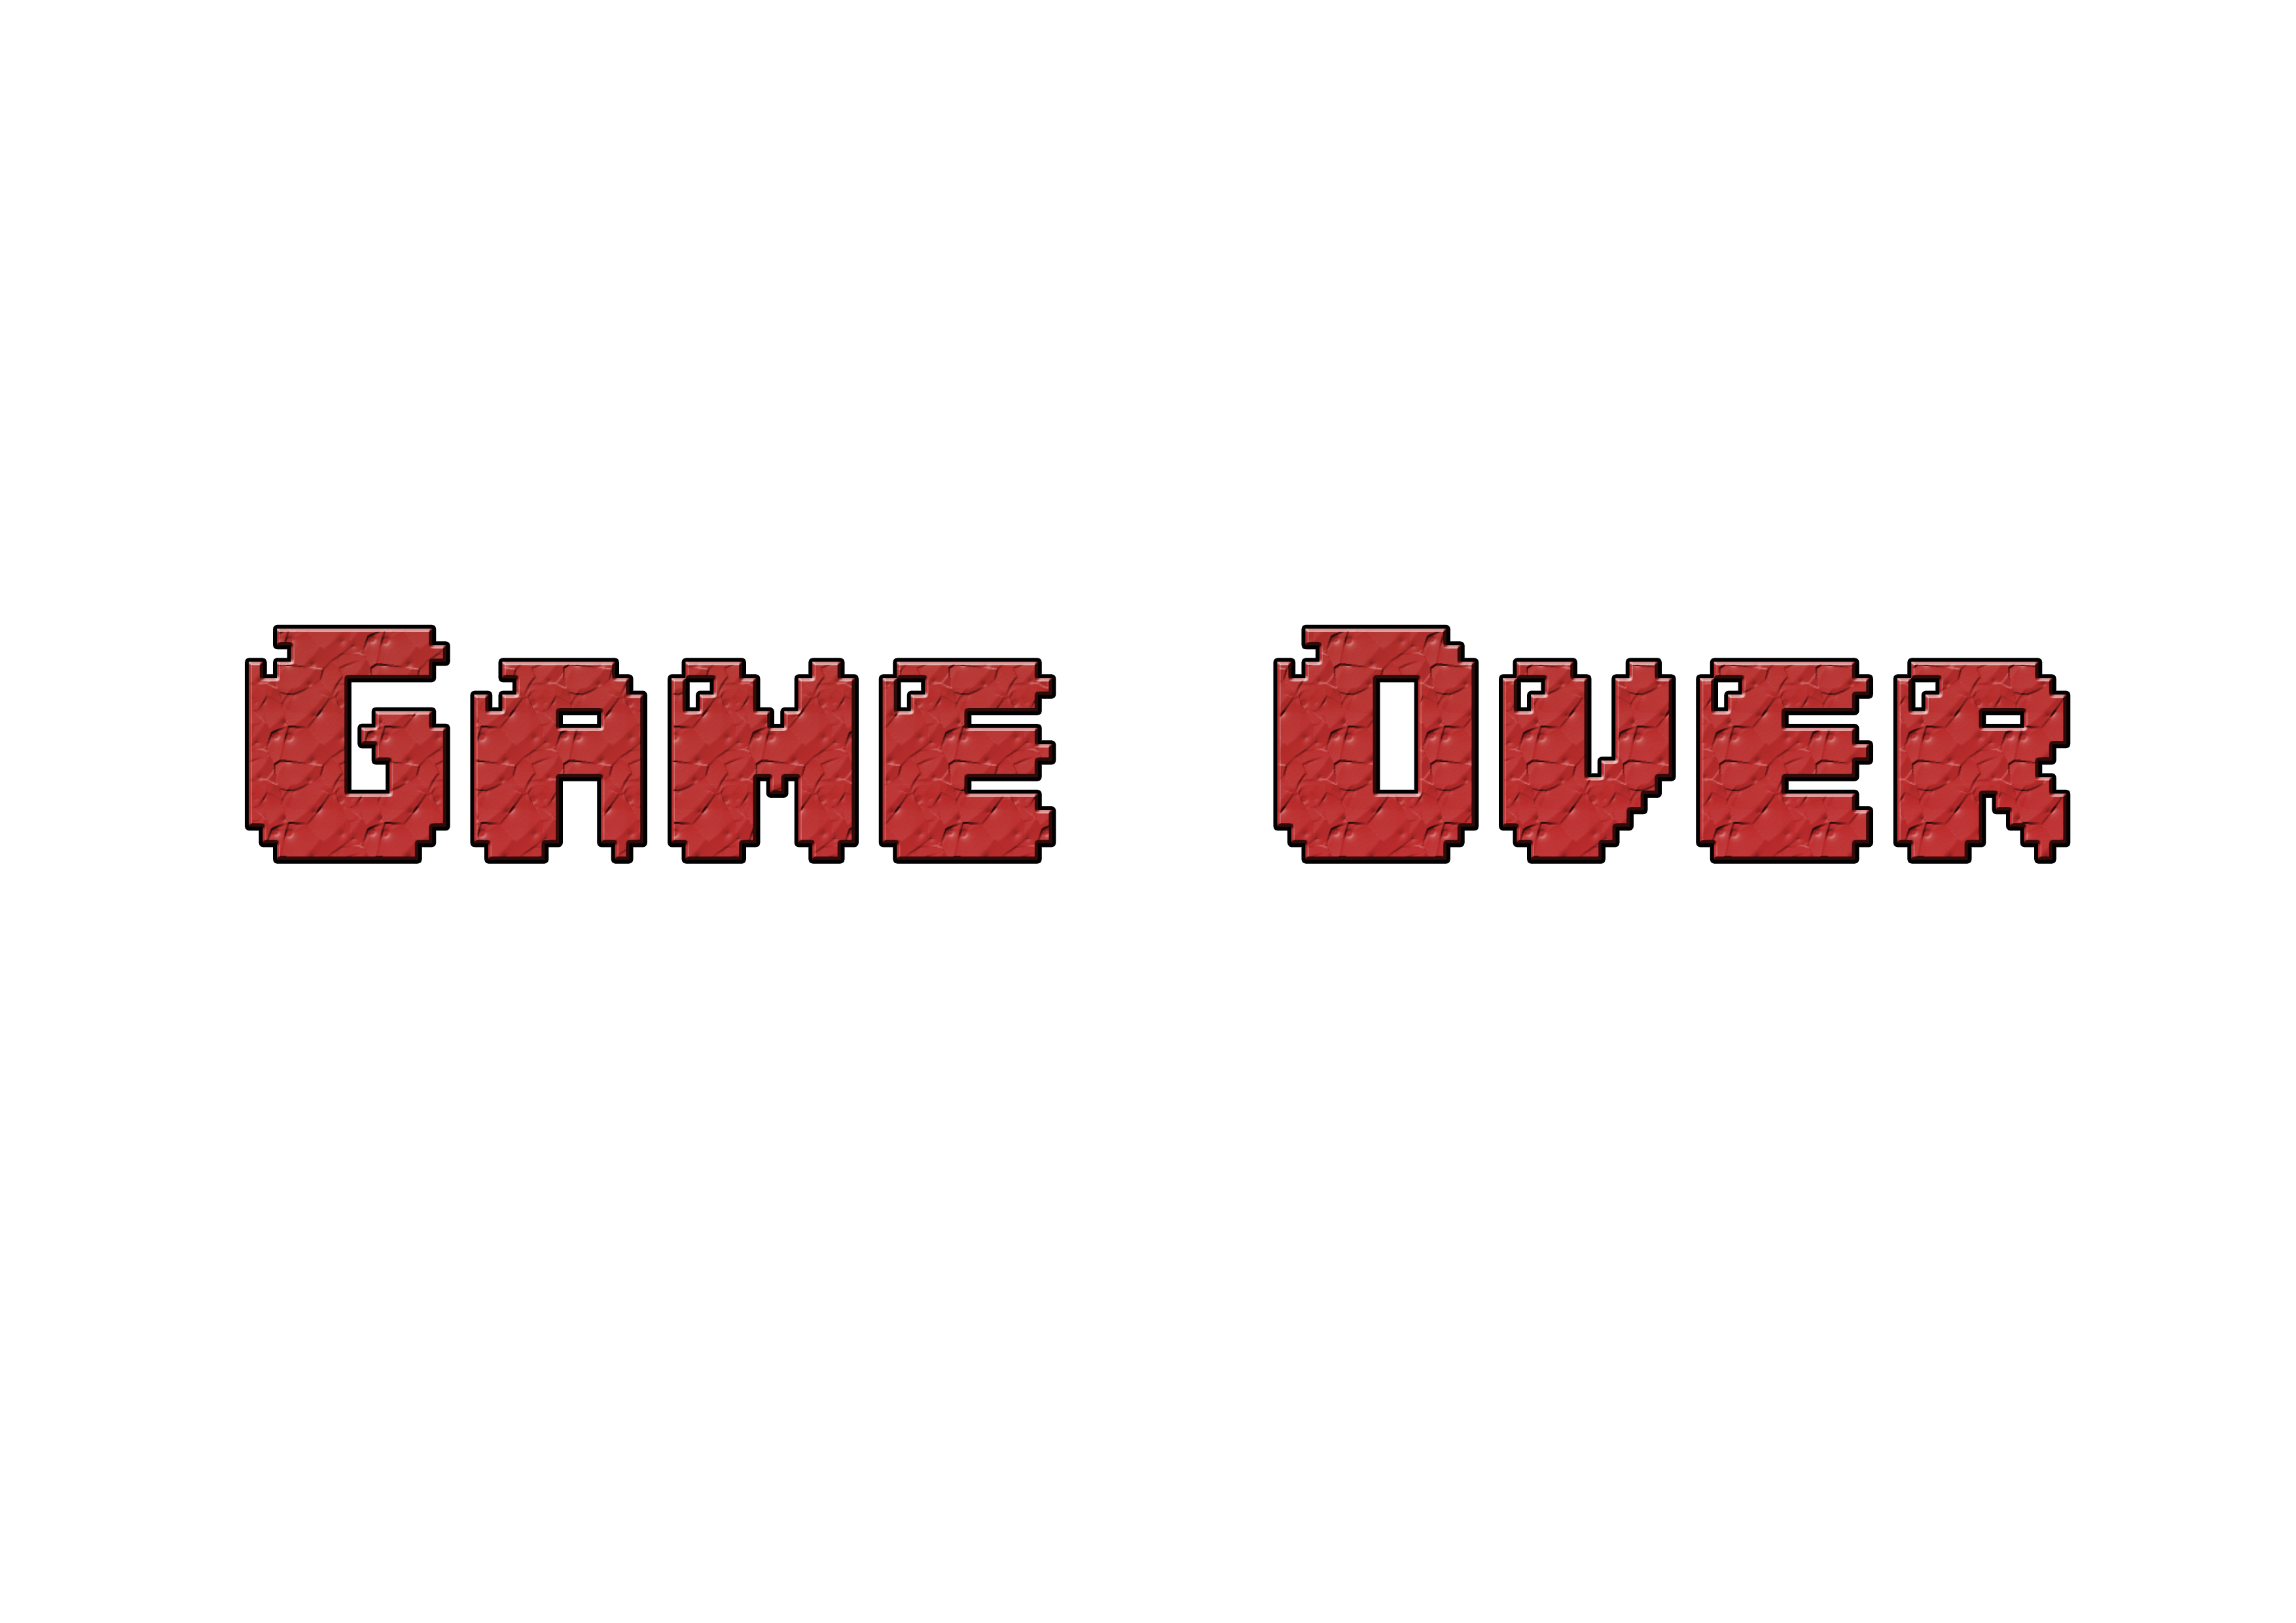 Game Over 1 Image